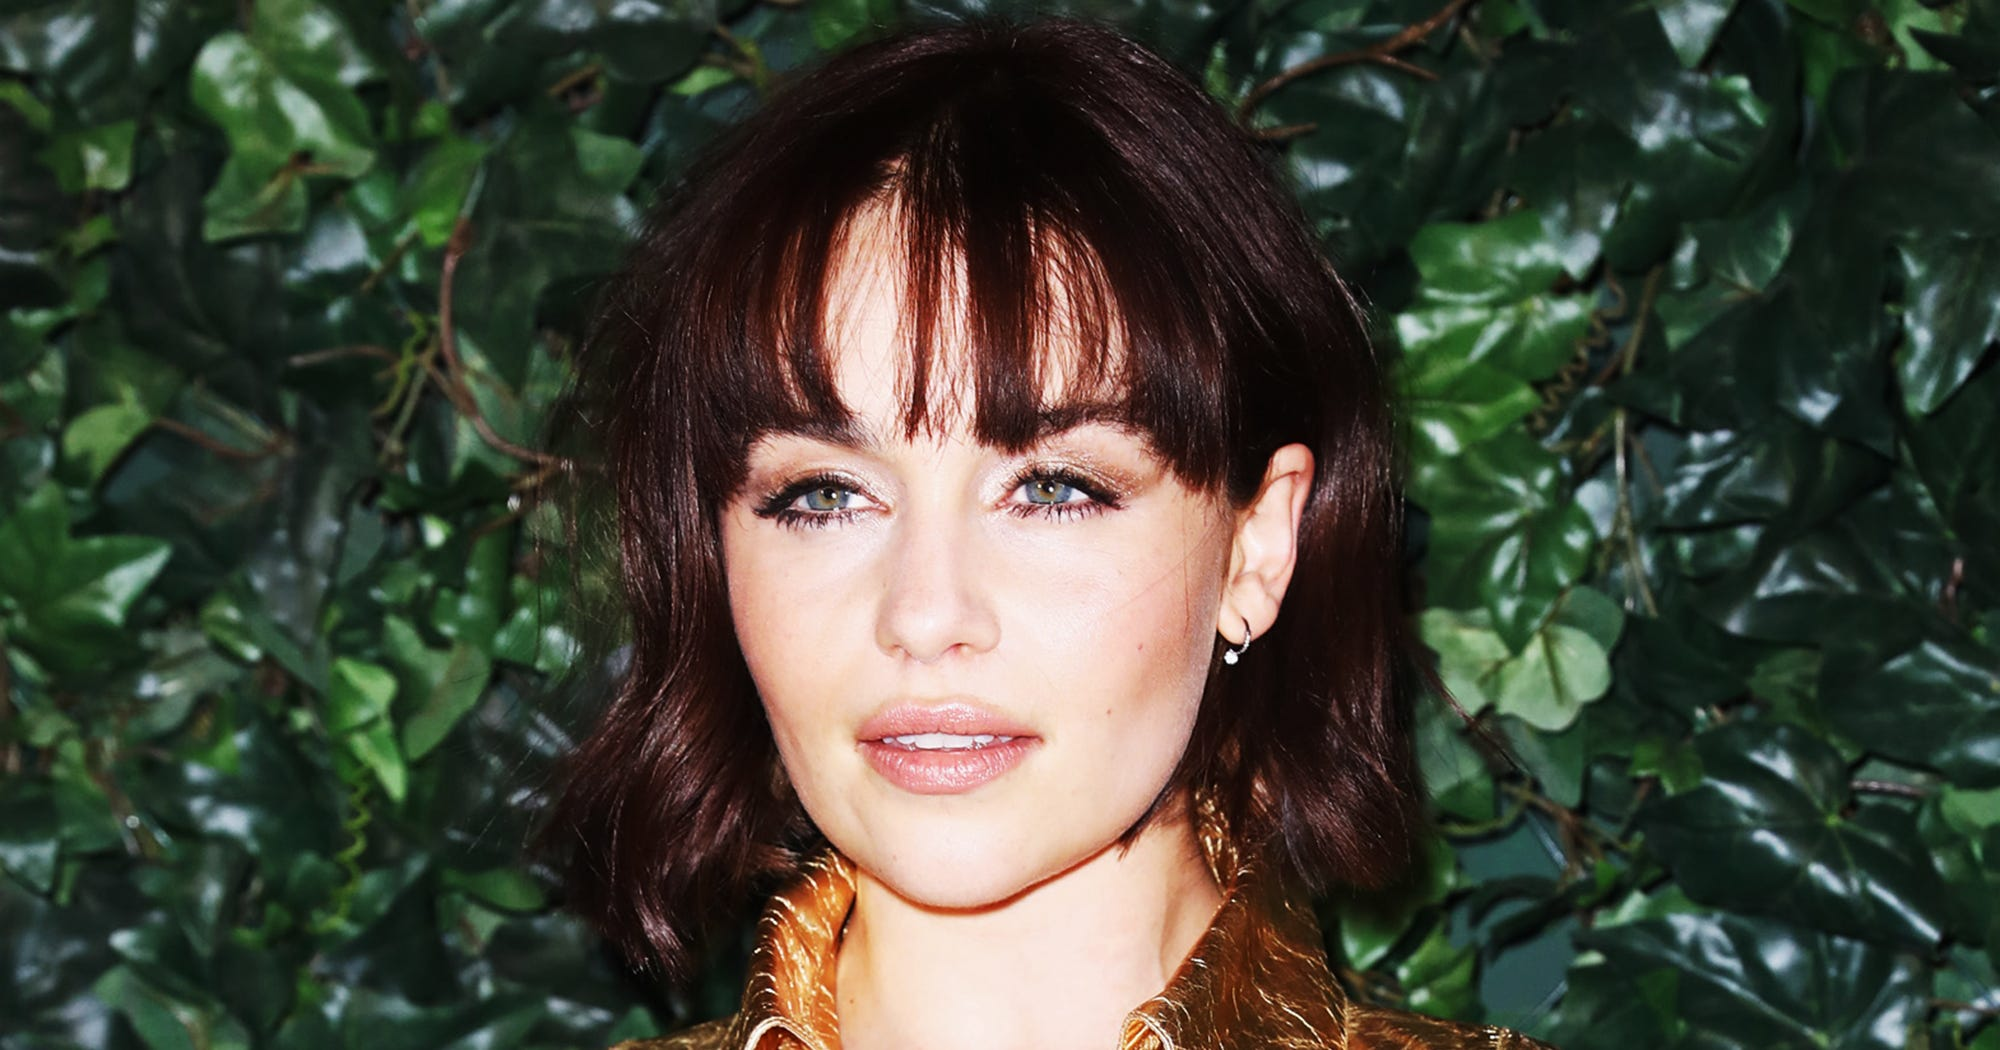 Game of Thrones actress Emilia Clarke watched her fiery